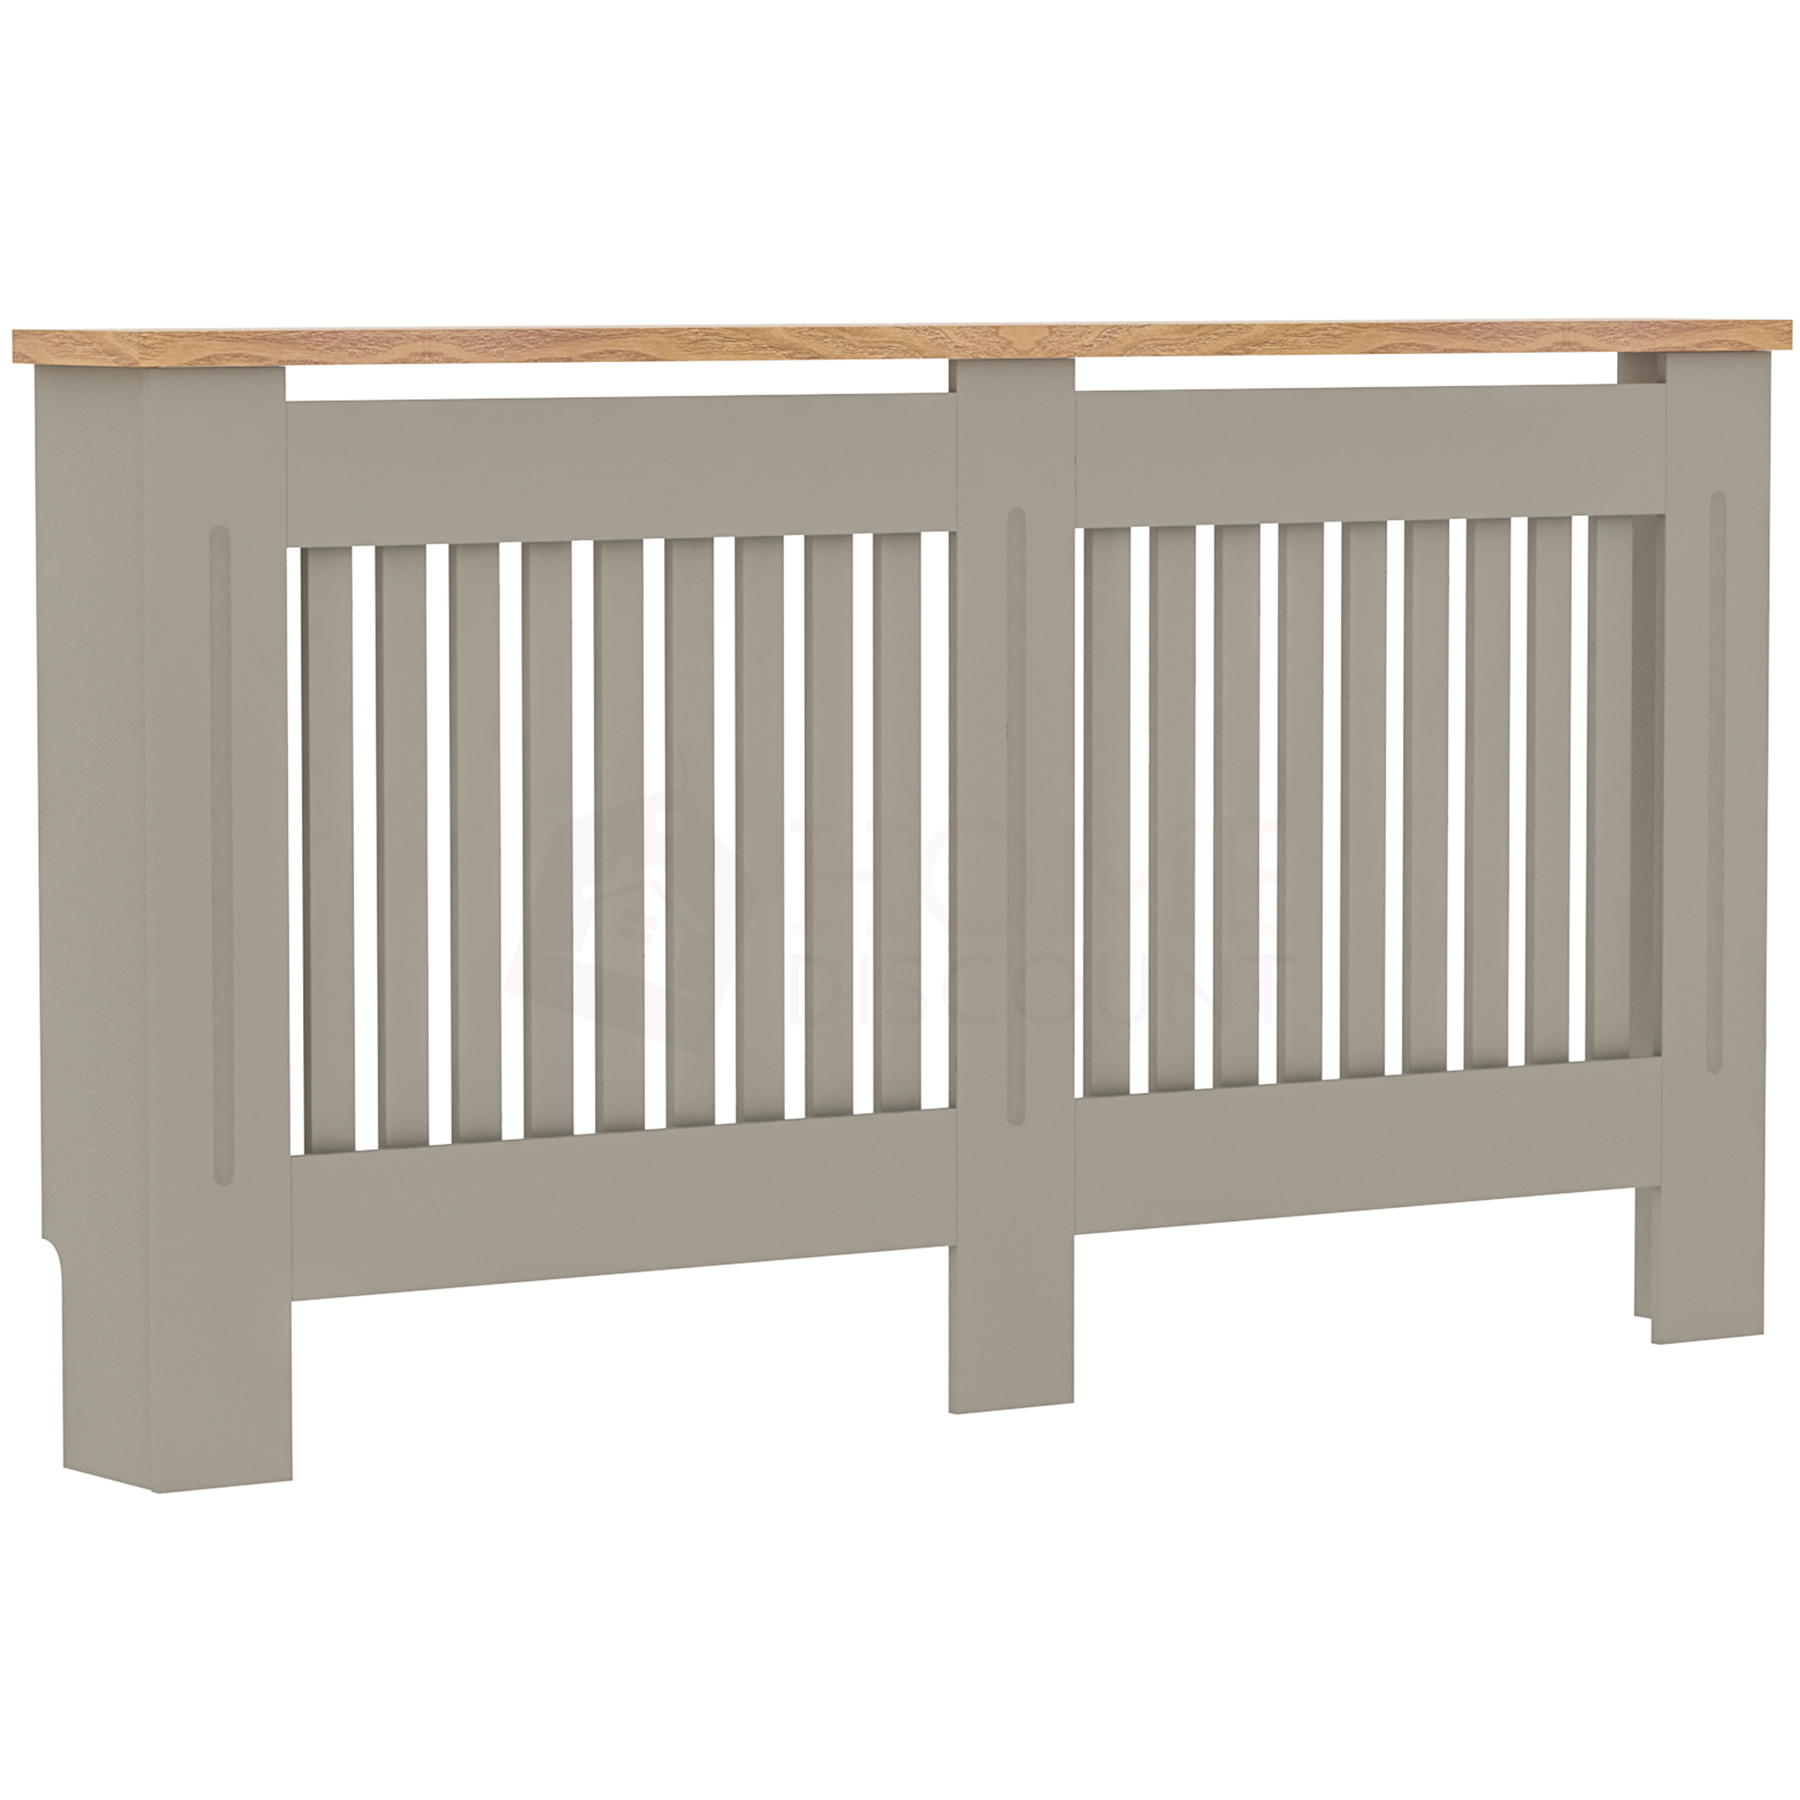 Radiateur-Housse-Blanc-inachevee-MODERNE-BOIS-TRADITIONNELLE-Grill-cabinet-furniture miniature 57